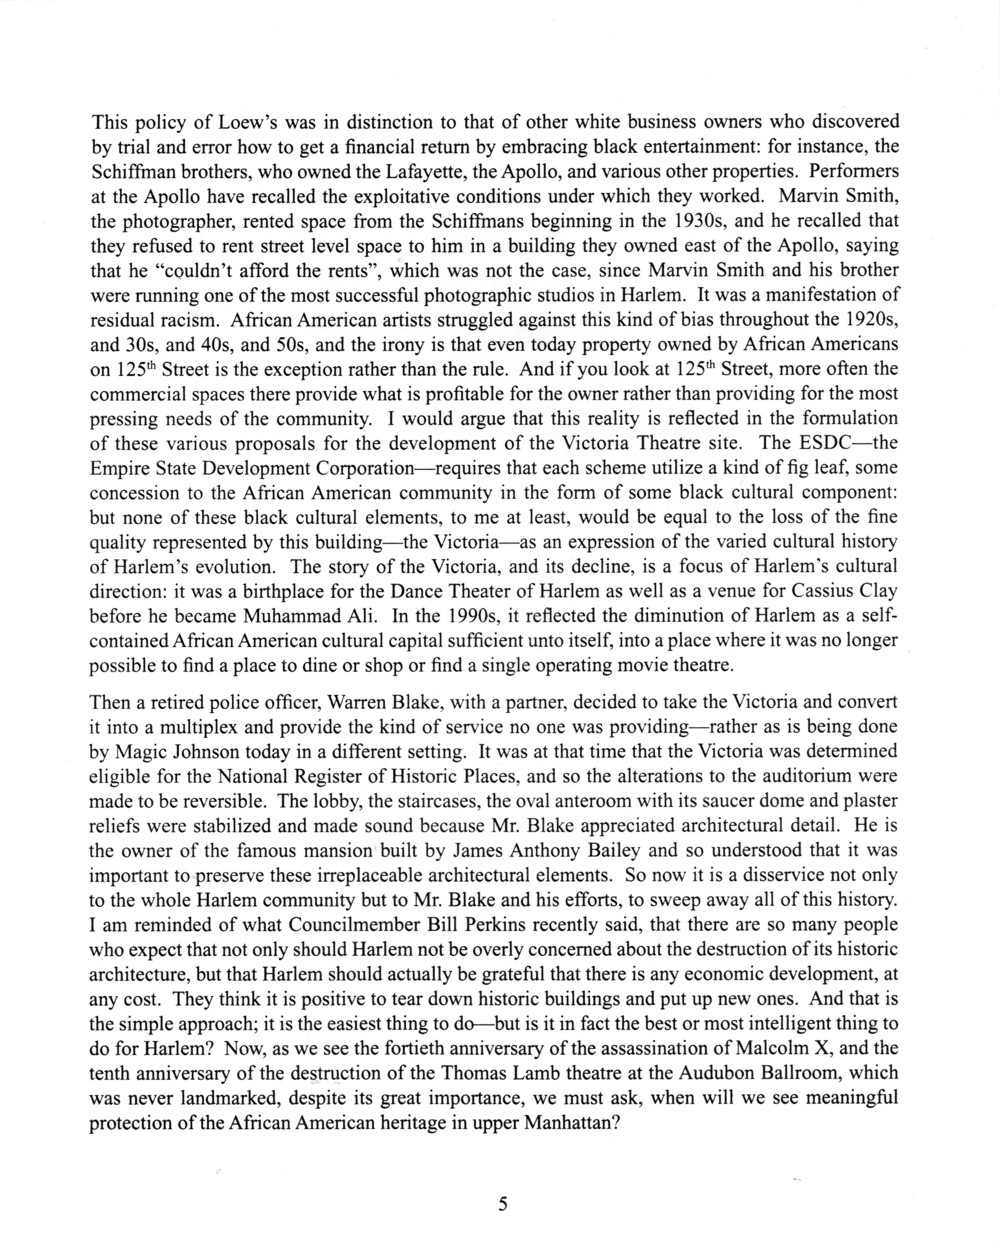 page05.jpg